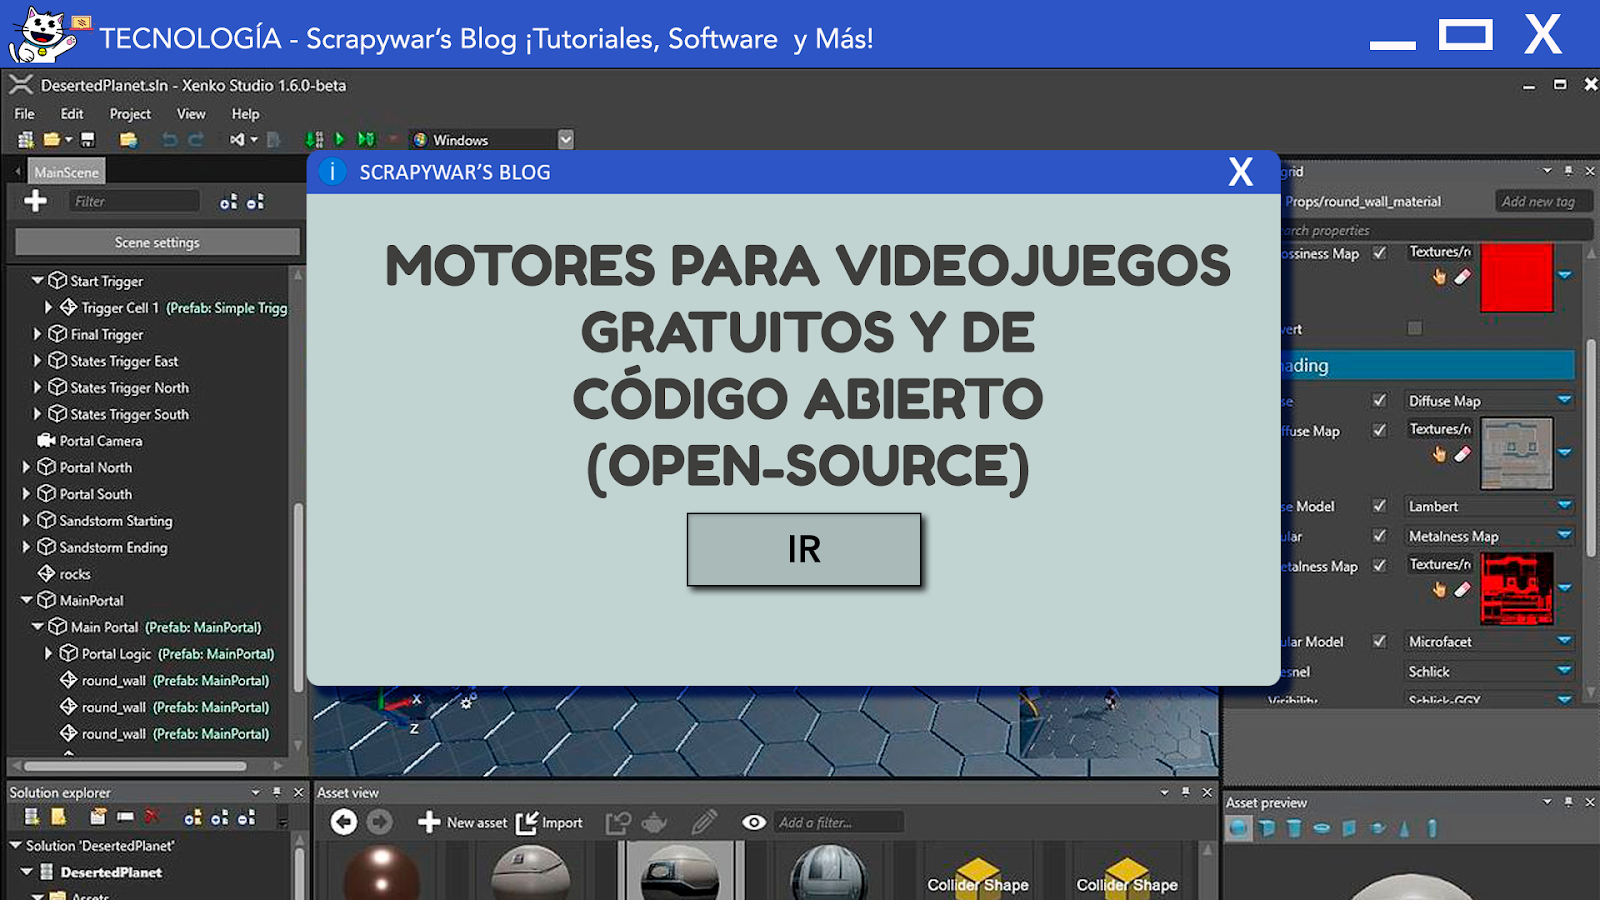 4 Motores para videojuegos gratuitos y open-source